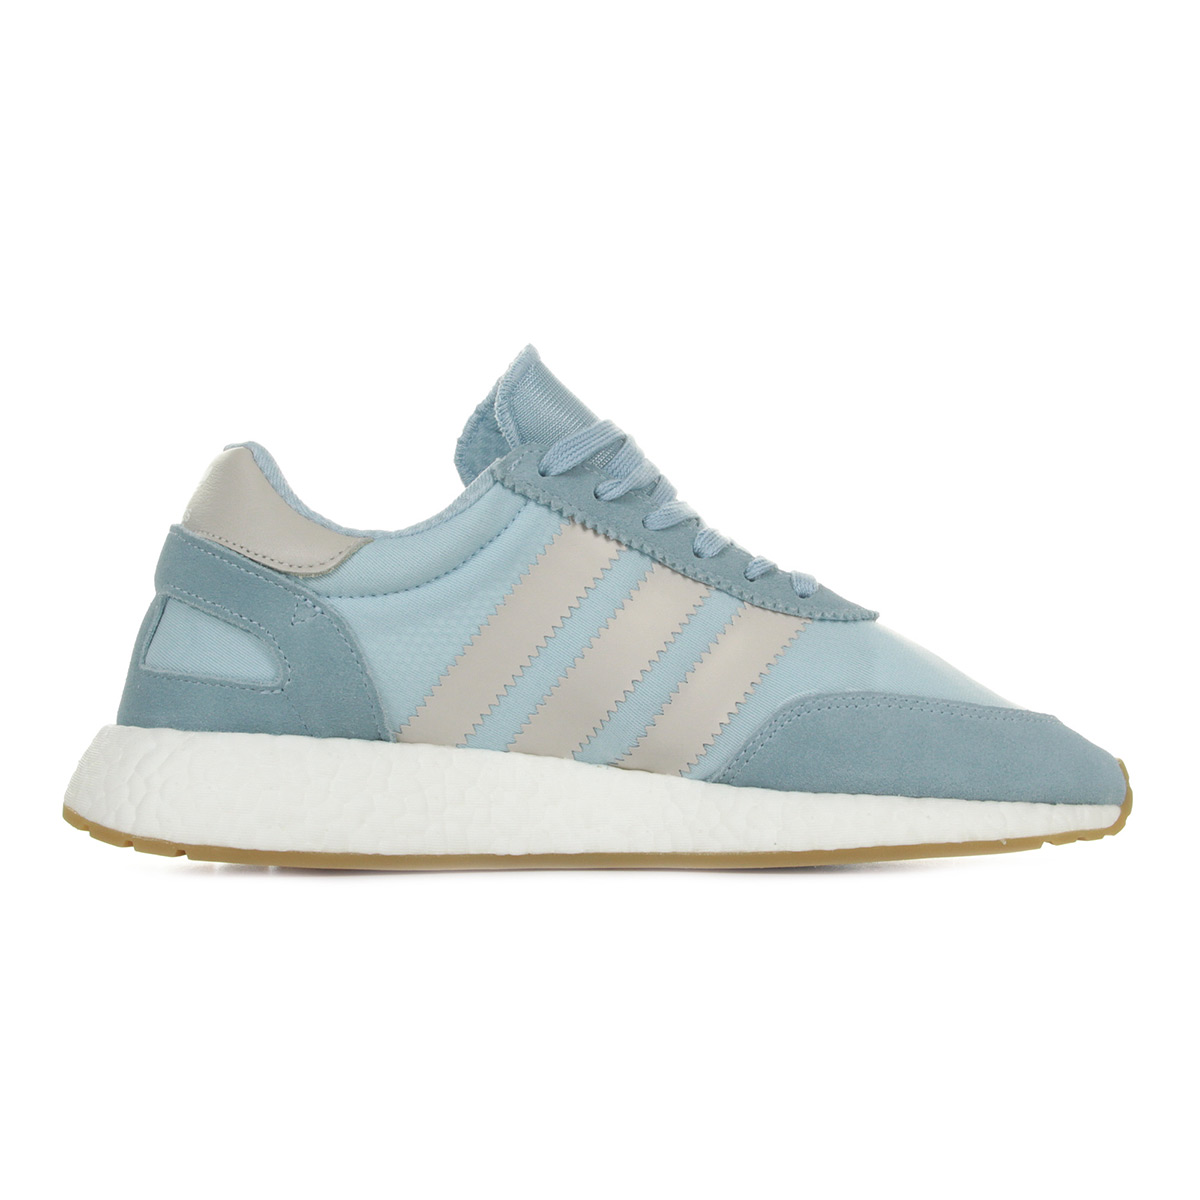 adidas Iniki Runner BB2099, Baskets mode